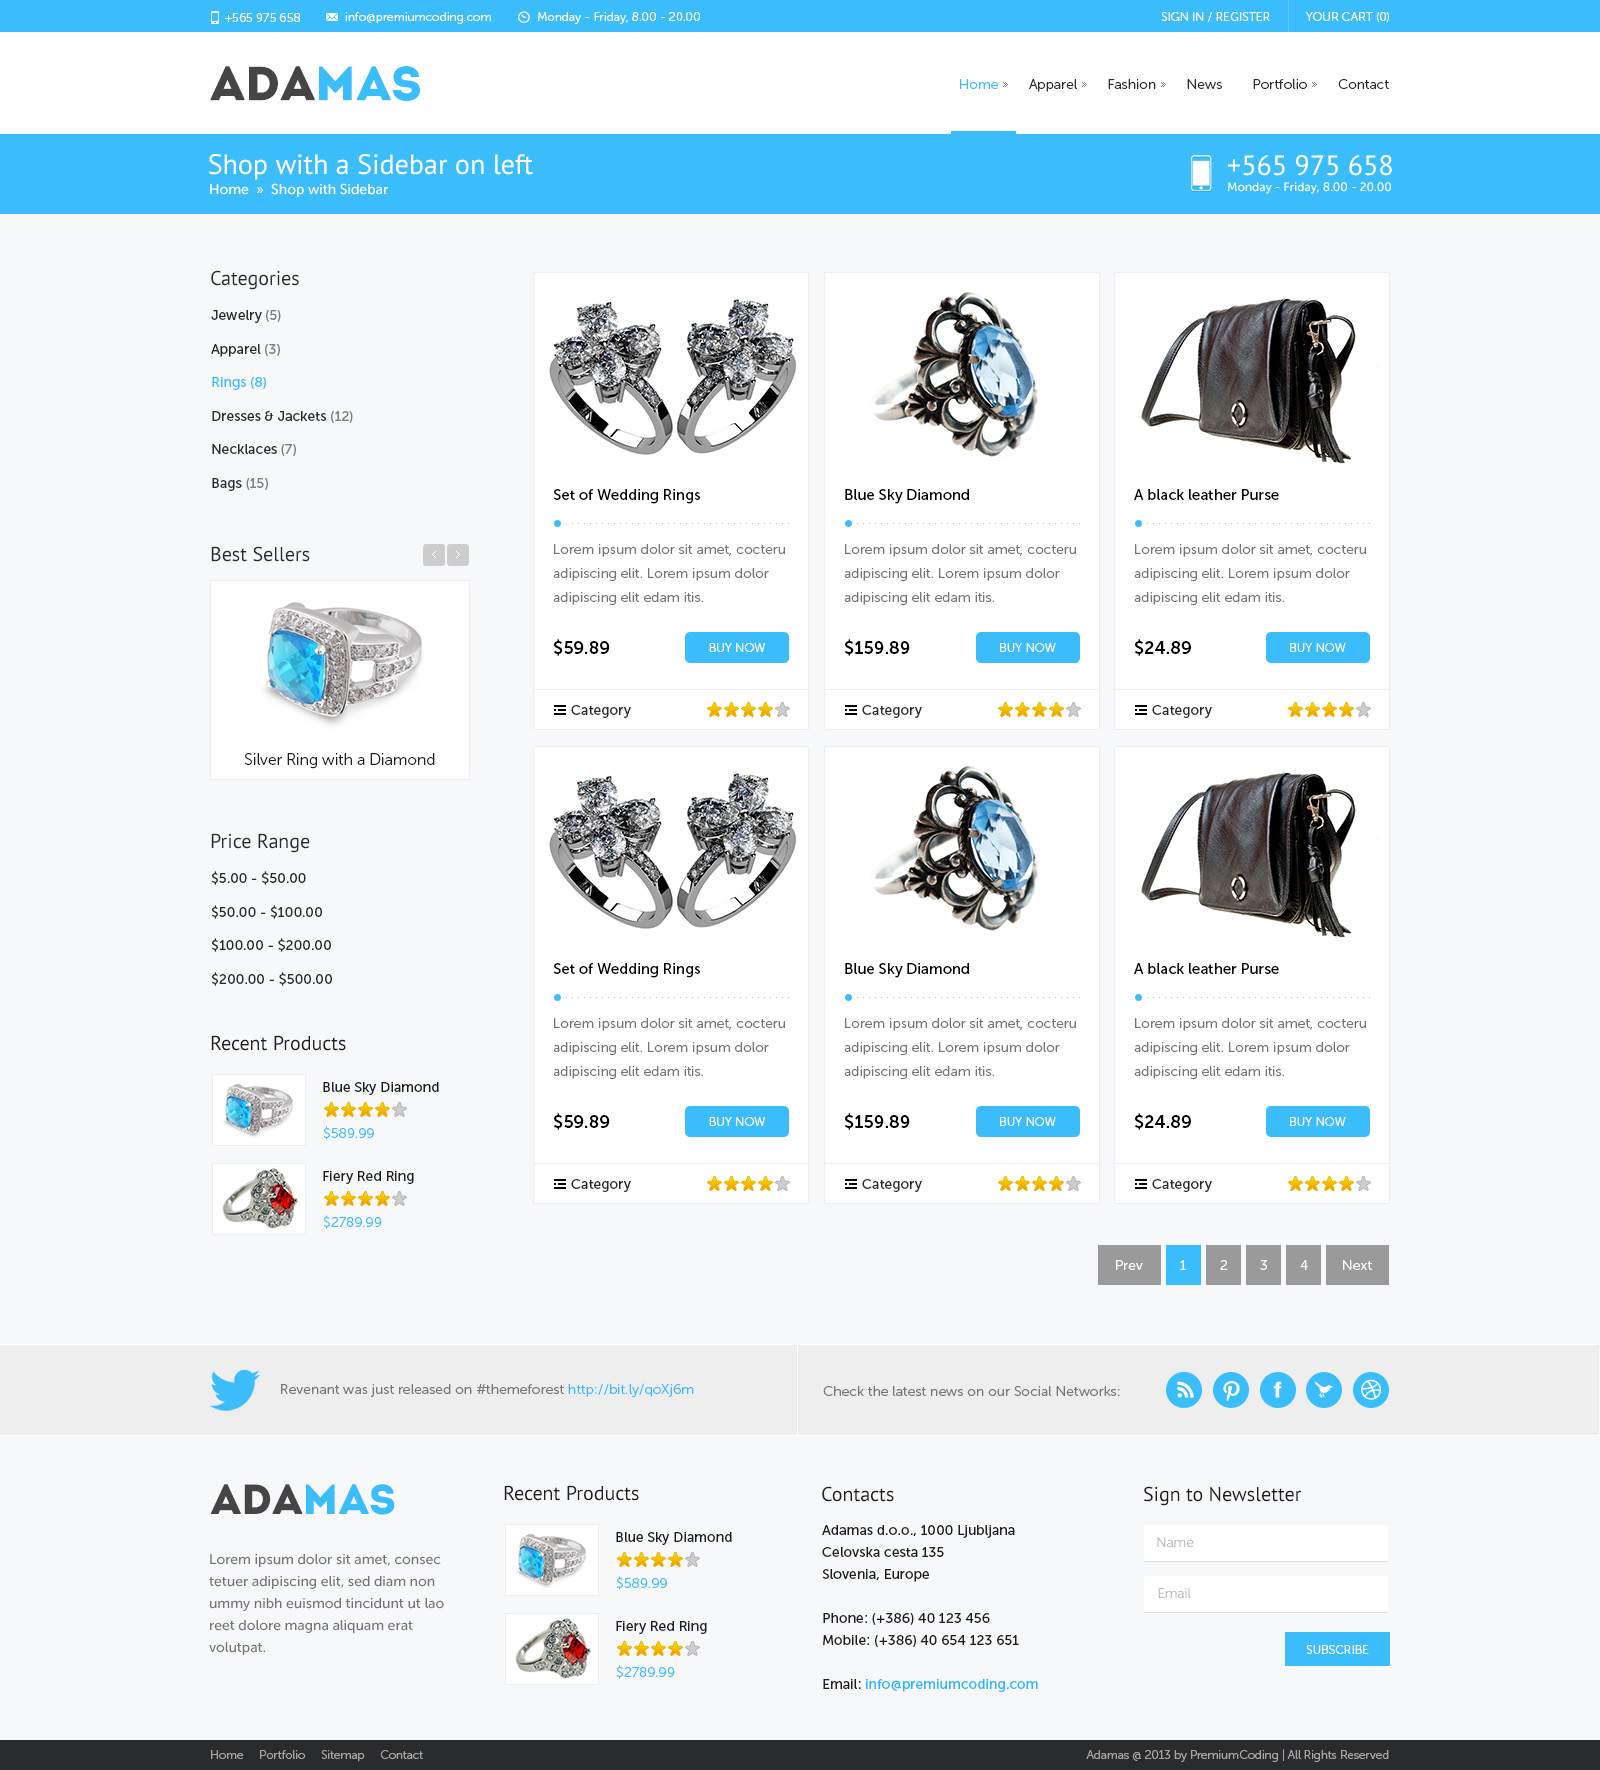 Freebie adamas ecommerce website psd template premiumcoding An website